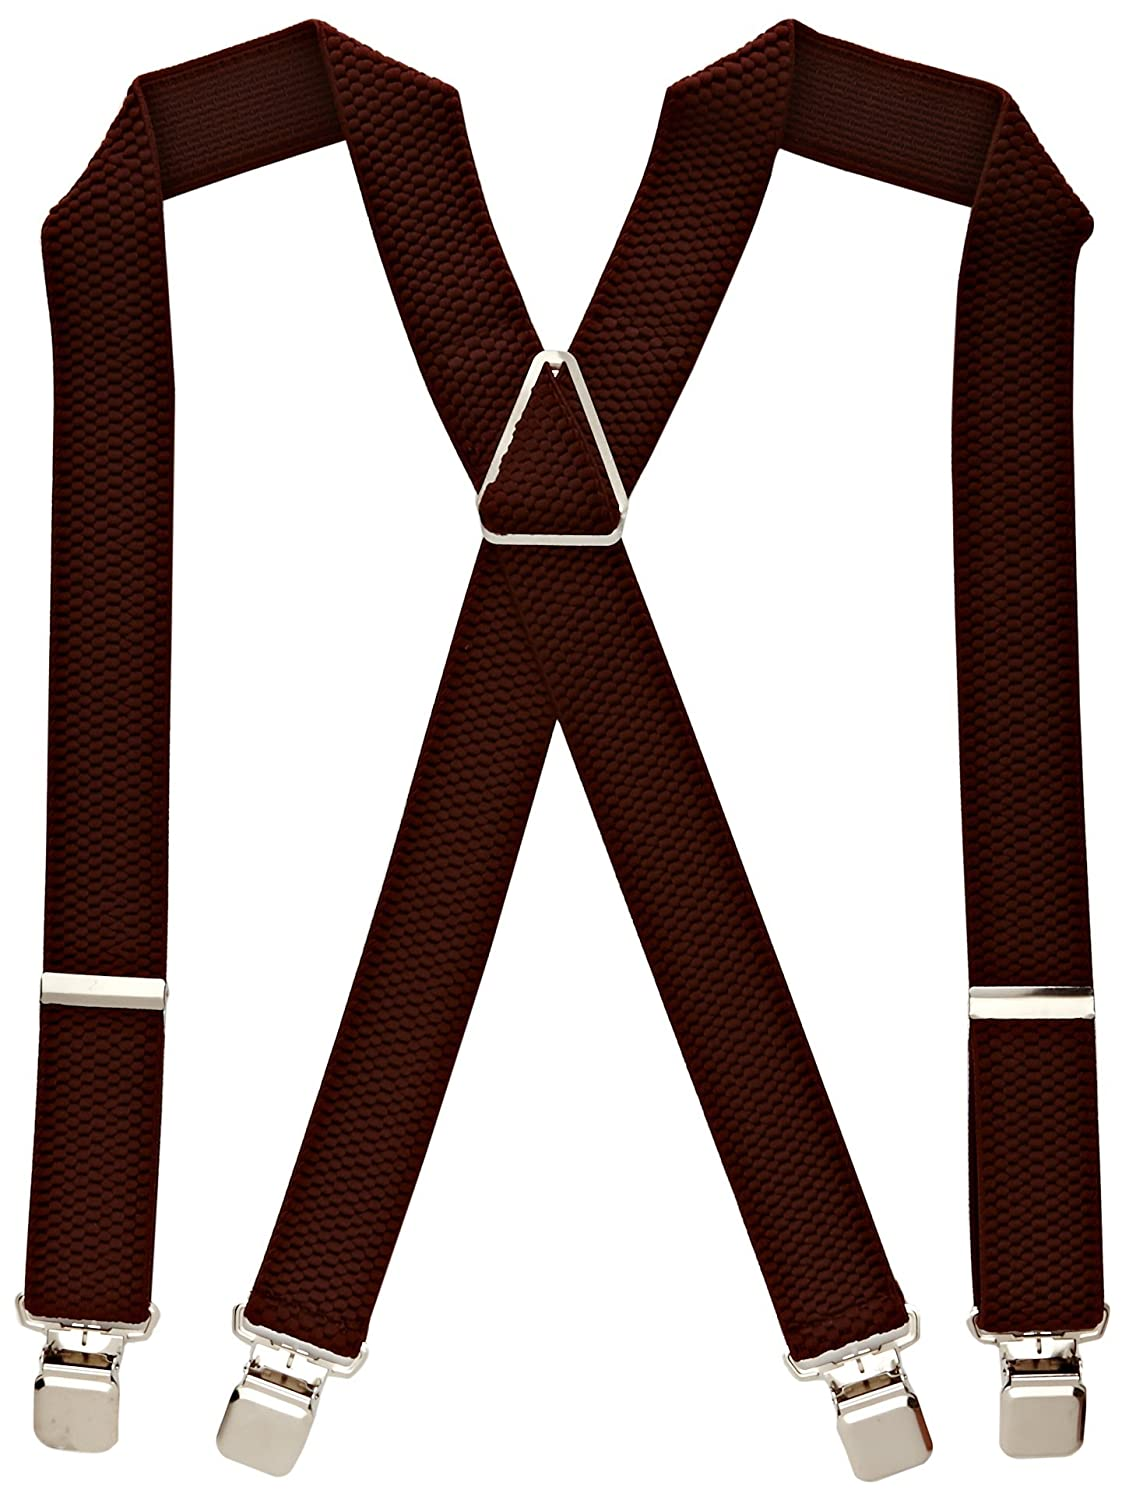 Heavy Duty Classic X-Shape Braces/Suspenders with Extra Strong Clips, 4cm 4cm - Brown BRACESN-brown